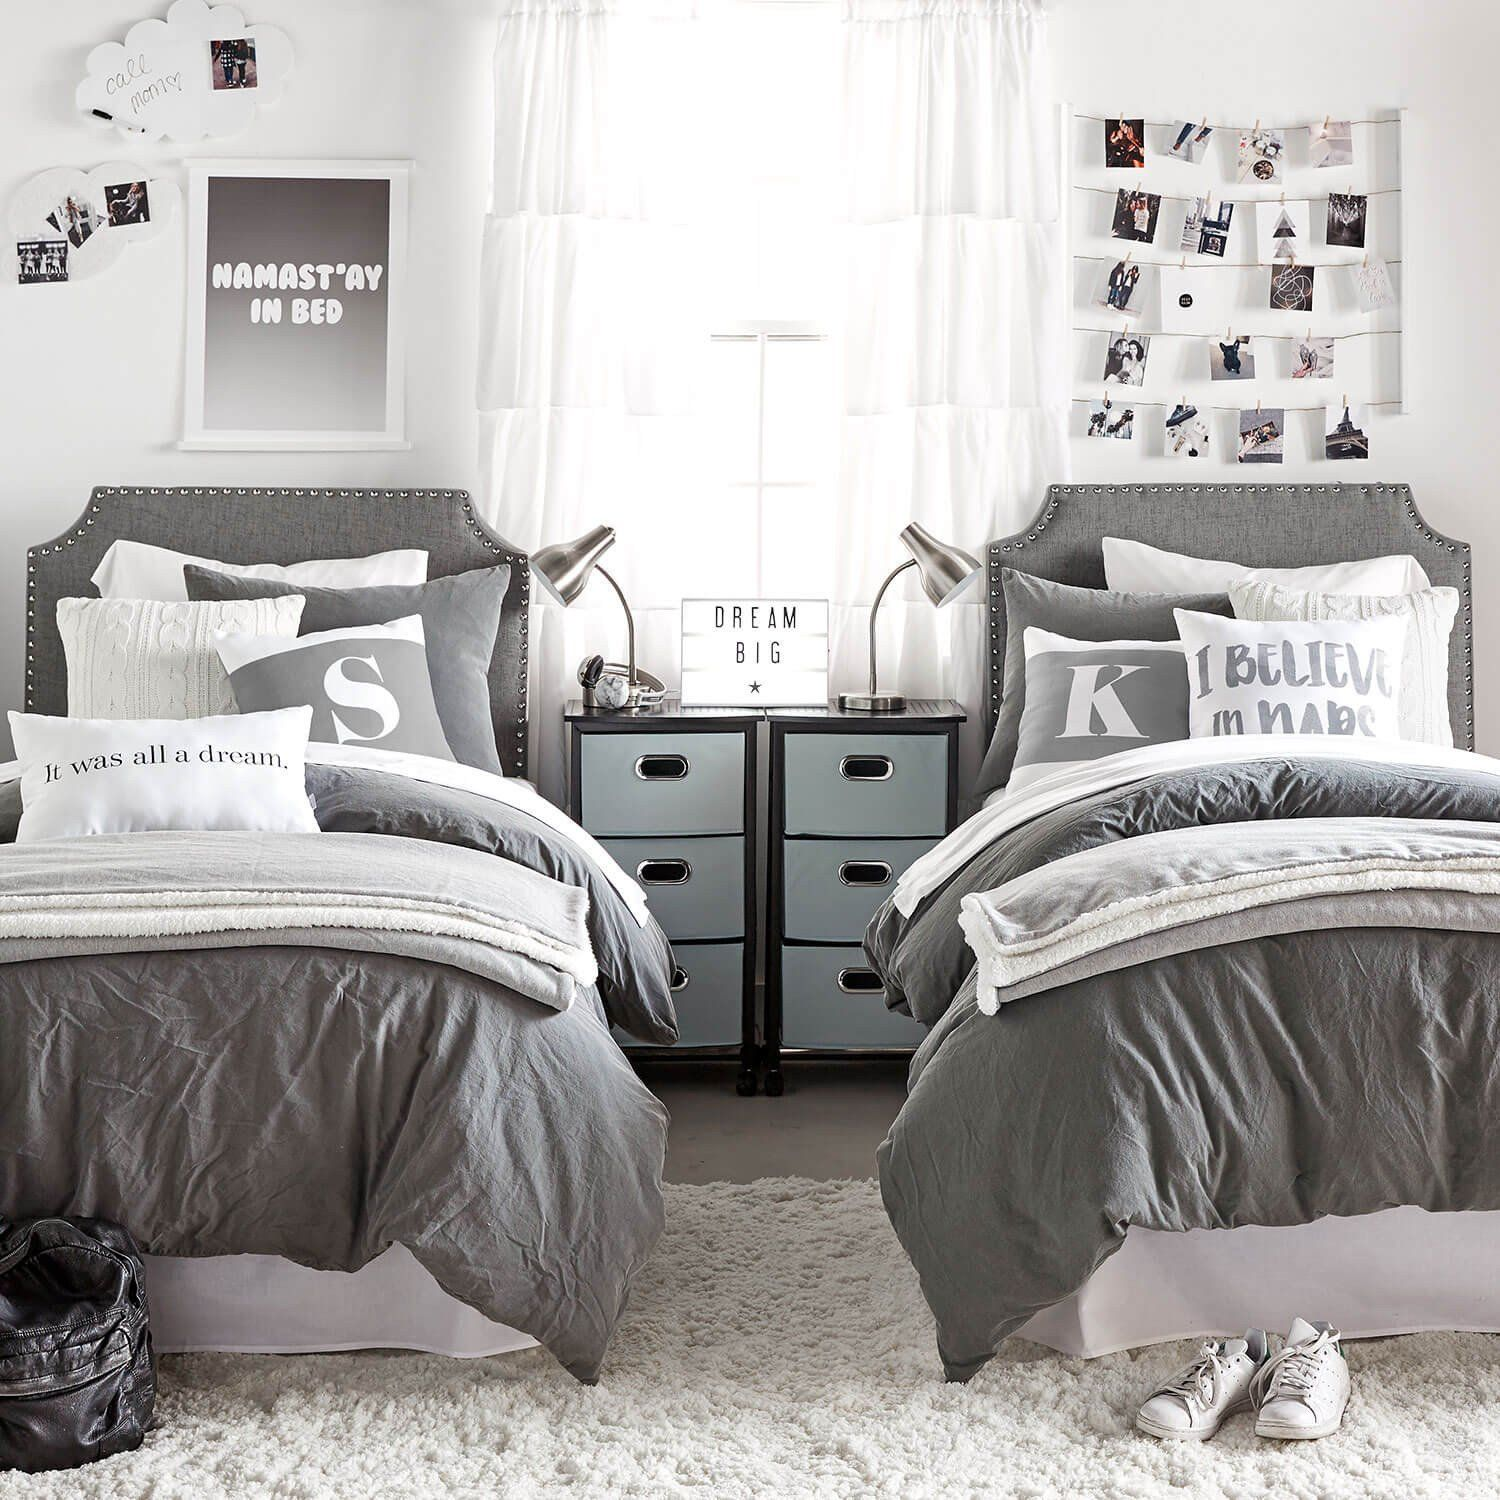 Dorm Room Ideas College Room Decor Dorm Design